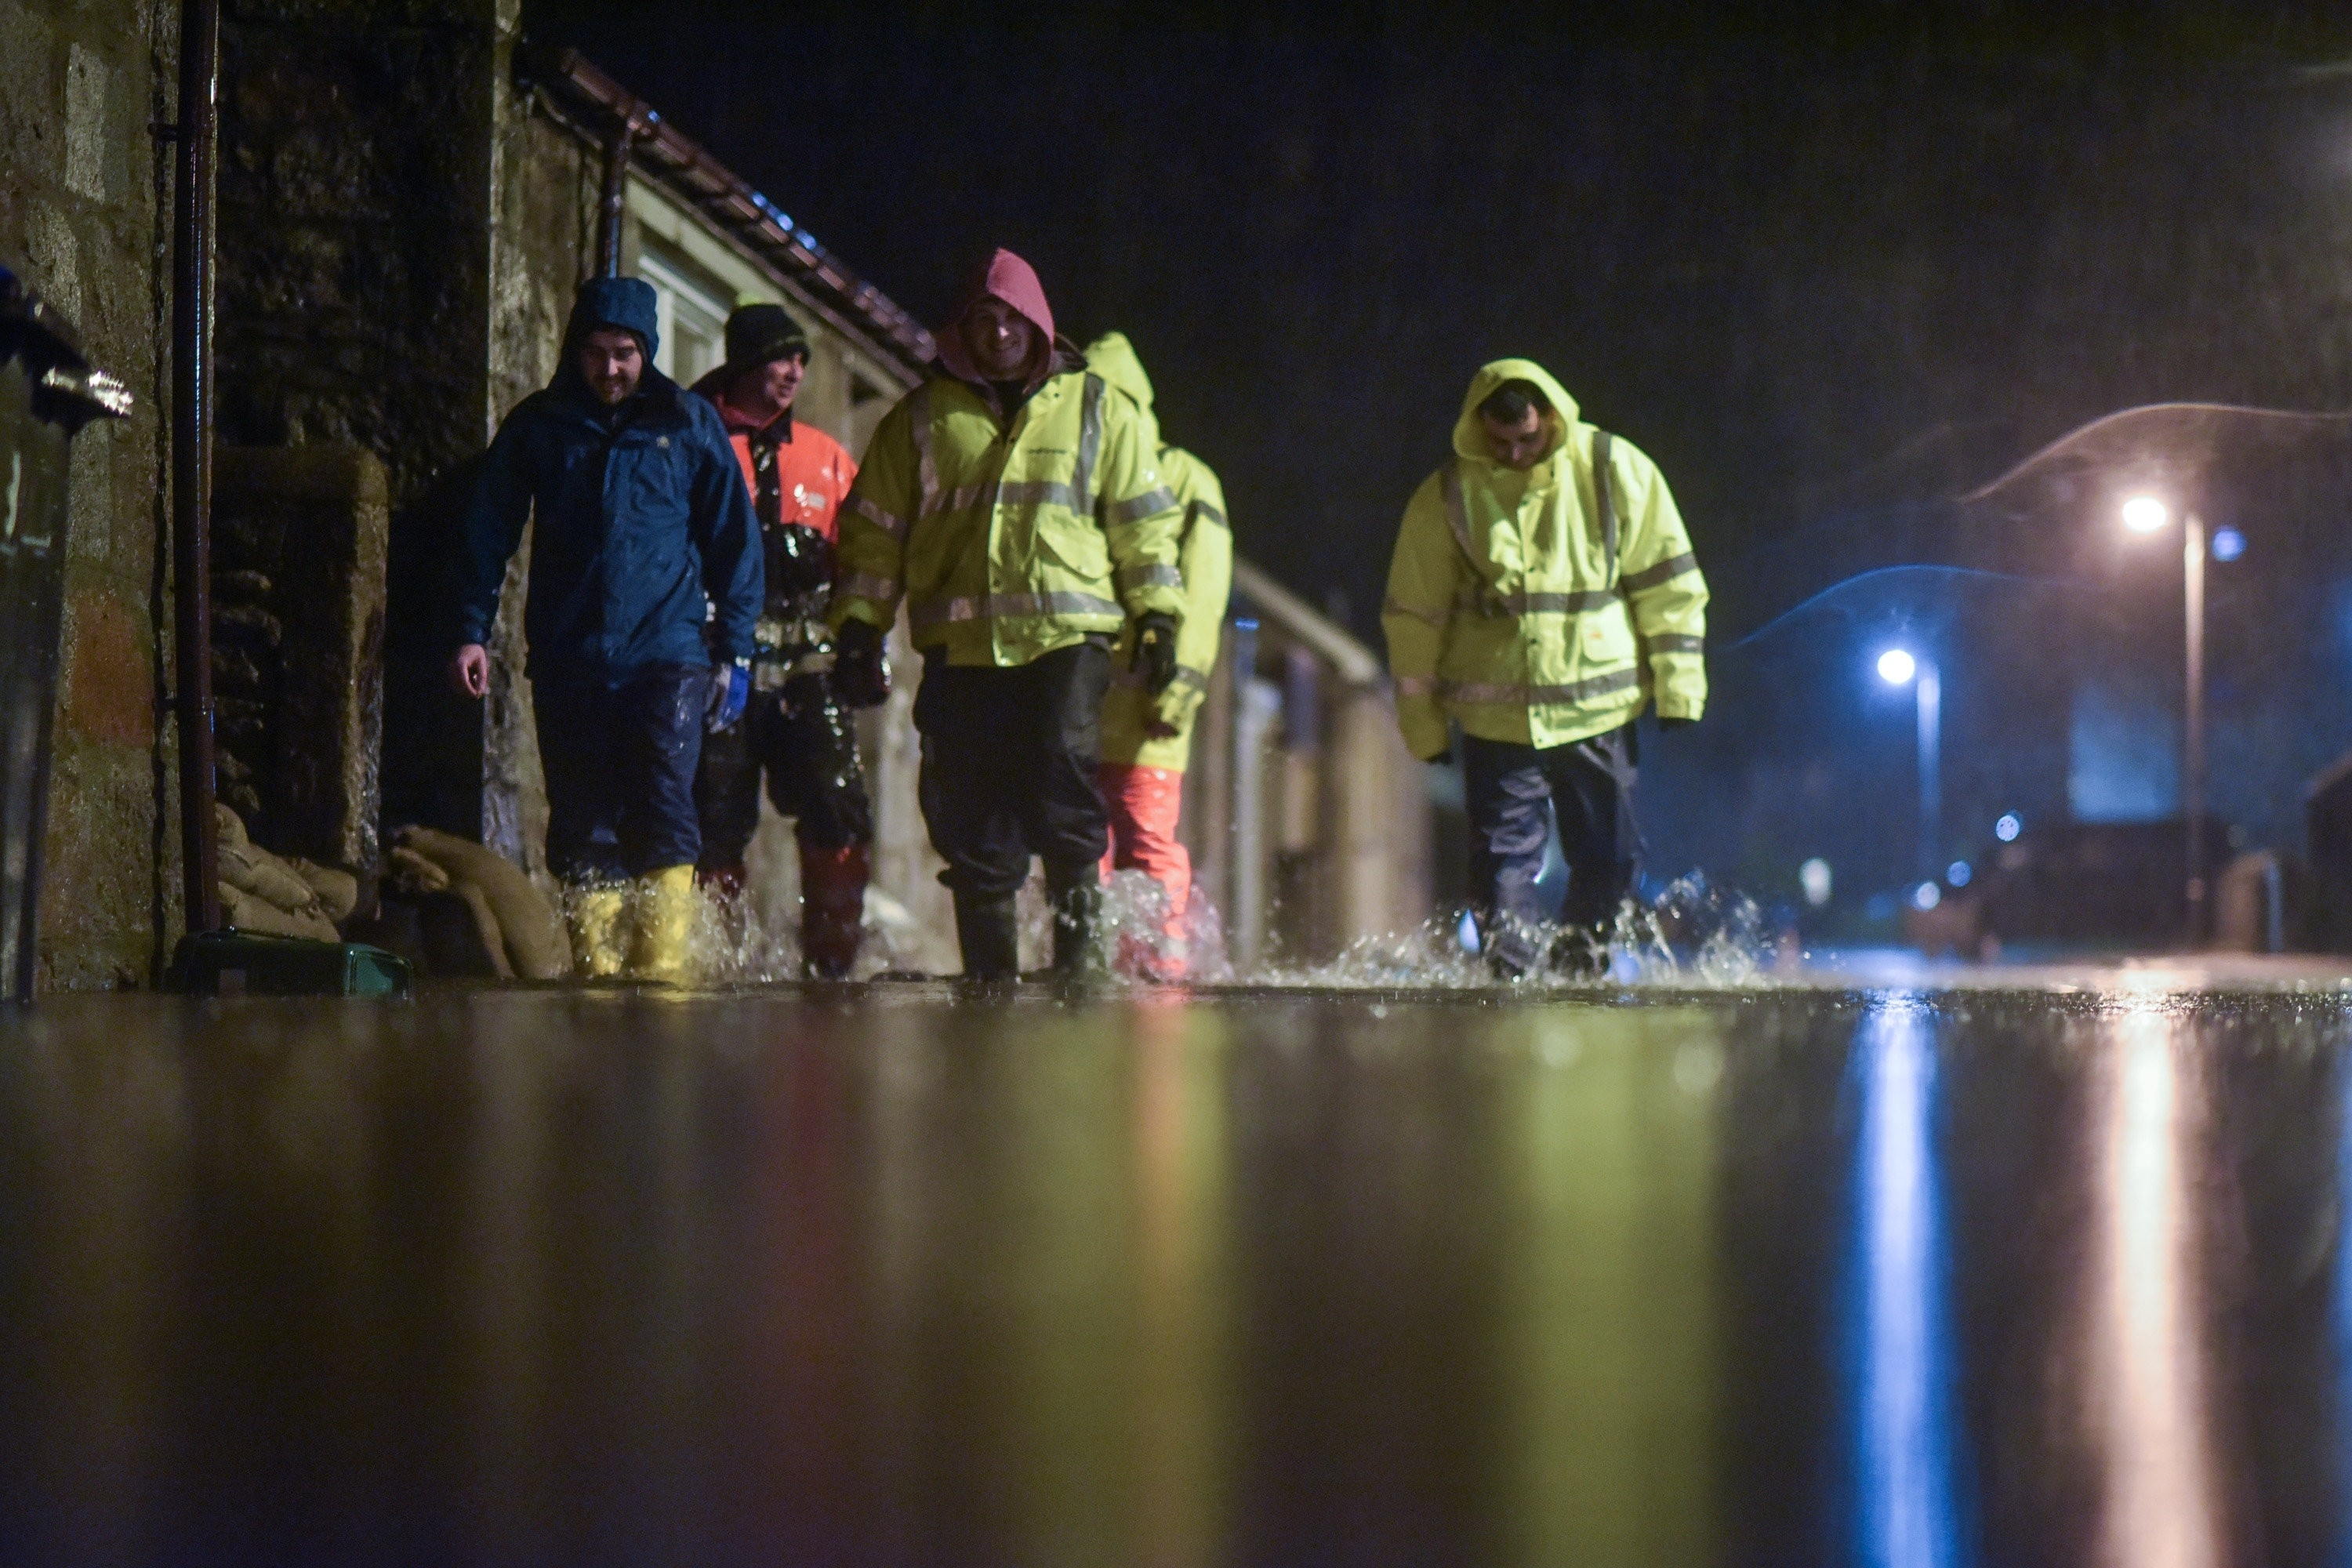 Men search homes in the Port Elphinstone area of Inverurie, Aberdeenshire as they begin to experience flooding after the River Don burst its banks on January 07 2016. Scottish Envornmental Protection Agency (SEPA) have issued two severe flood warnings for both Inverurie and Kintore, both in Aberdeenshire.